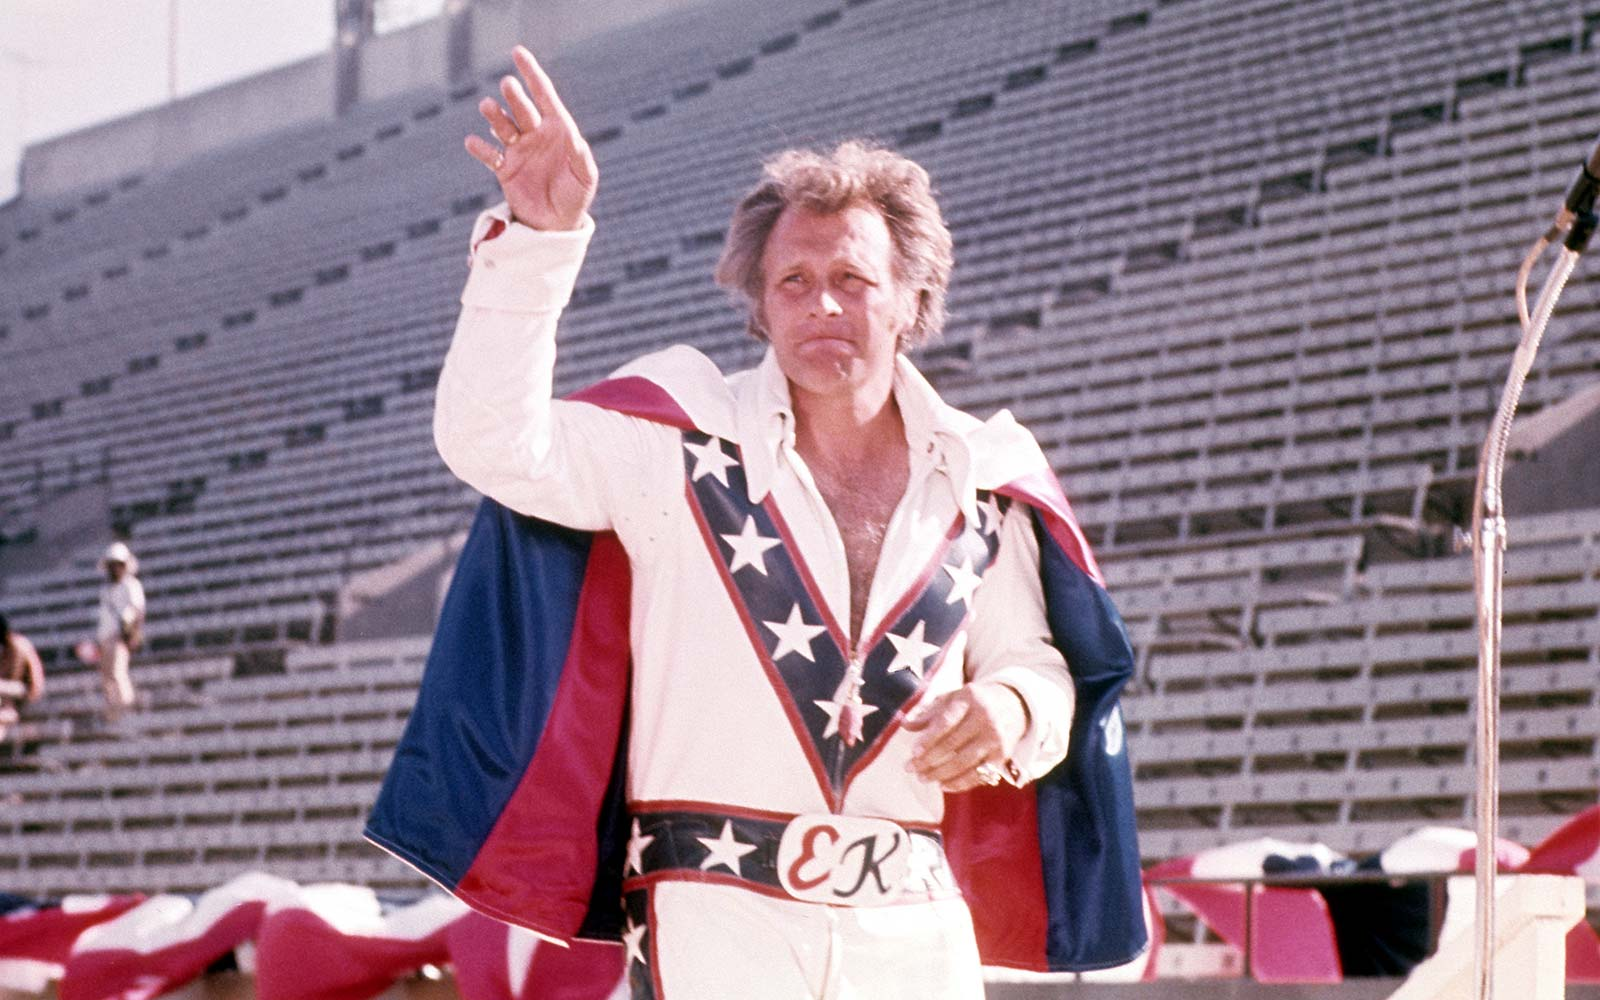 There's a New Evel Knievel Museum Daredevils Will Love